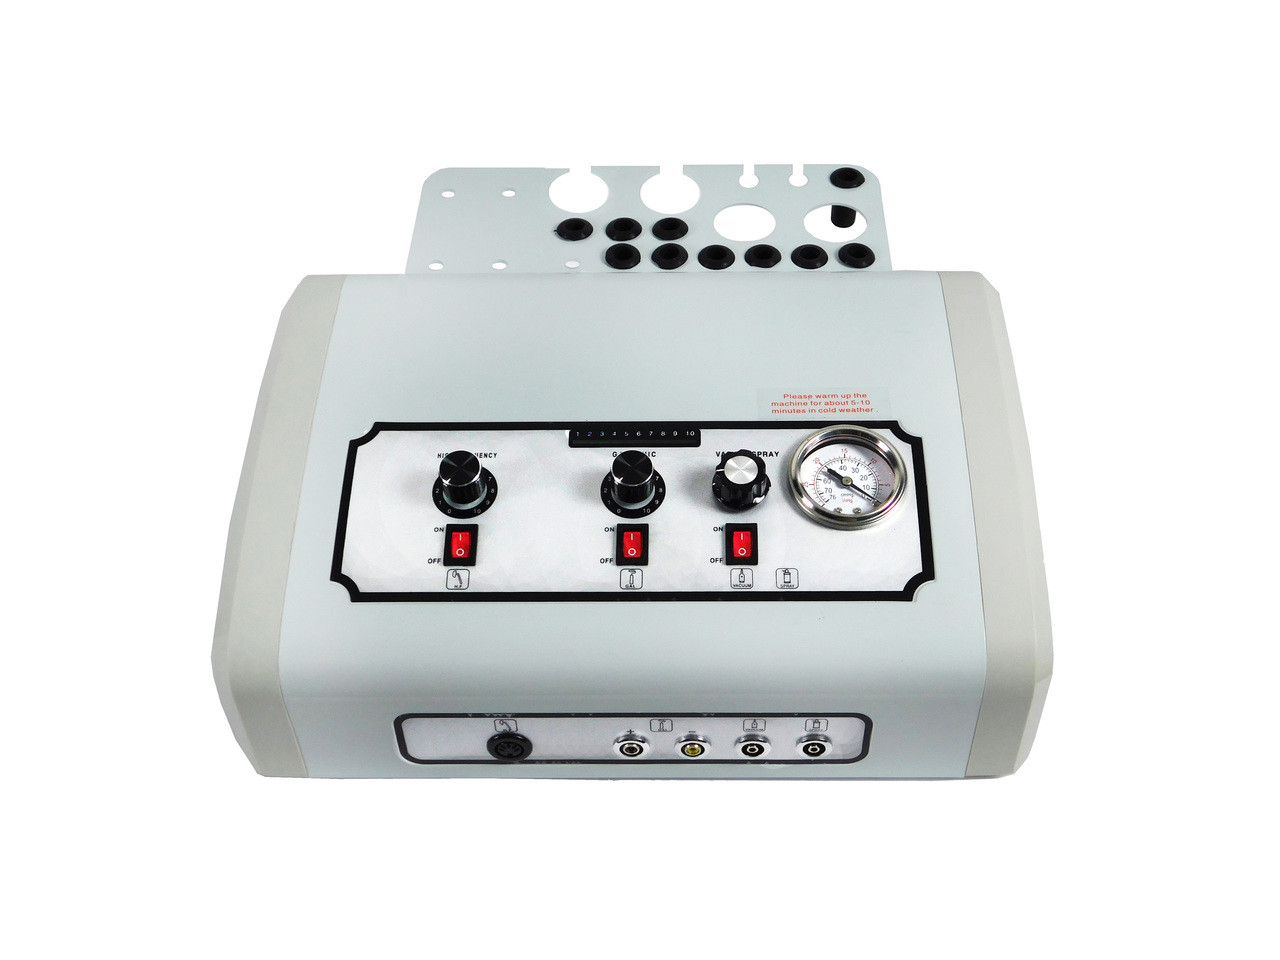 Aromatherapy Steamer 8 in 1 Skincare All in 1 Facial Machine TLC-3025CB